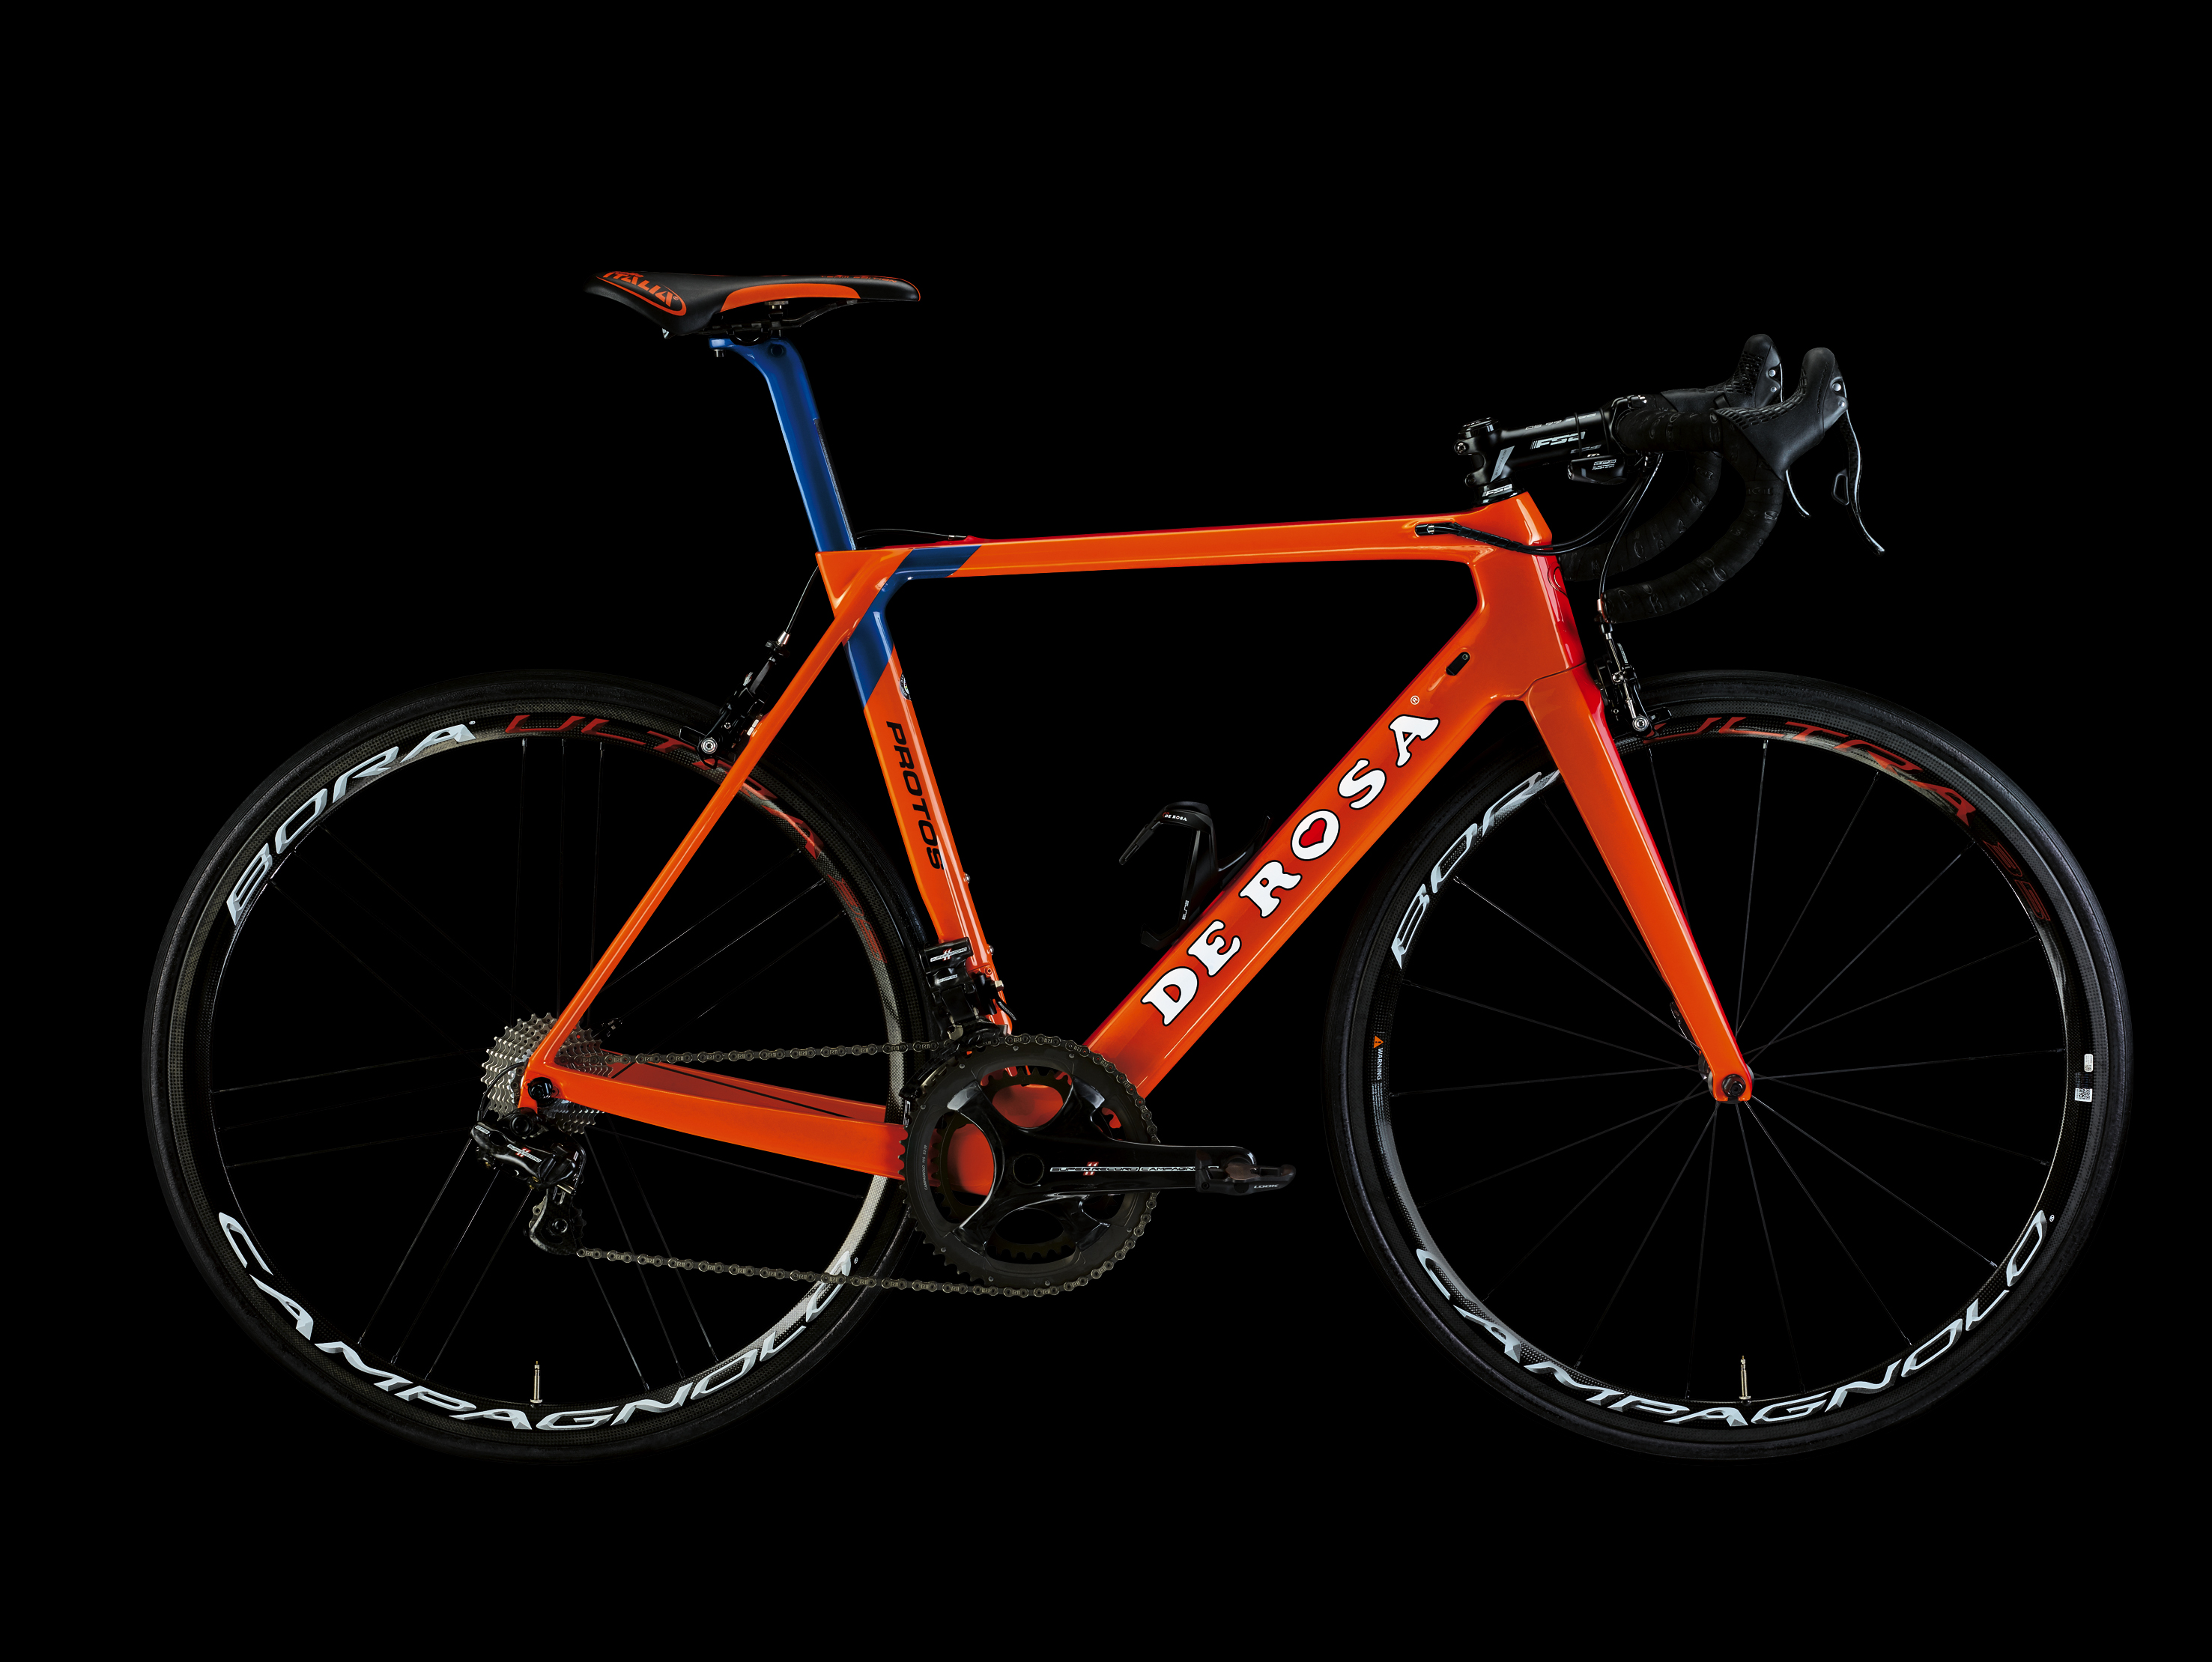 01 PROTOS_TEAM_NIPPO_CAF39_60416